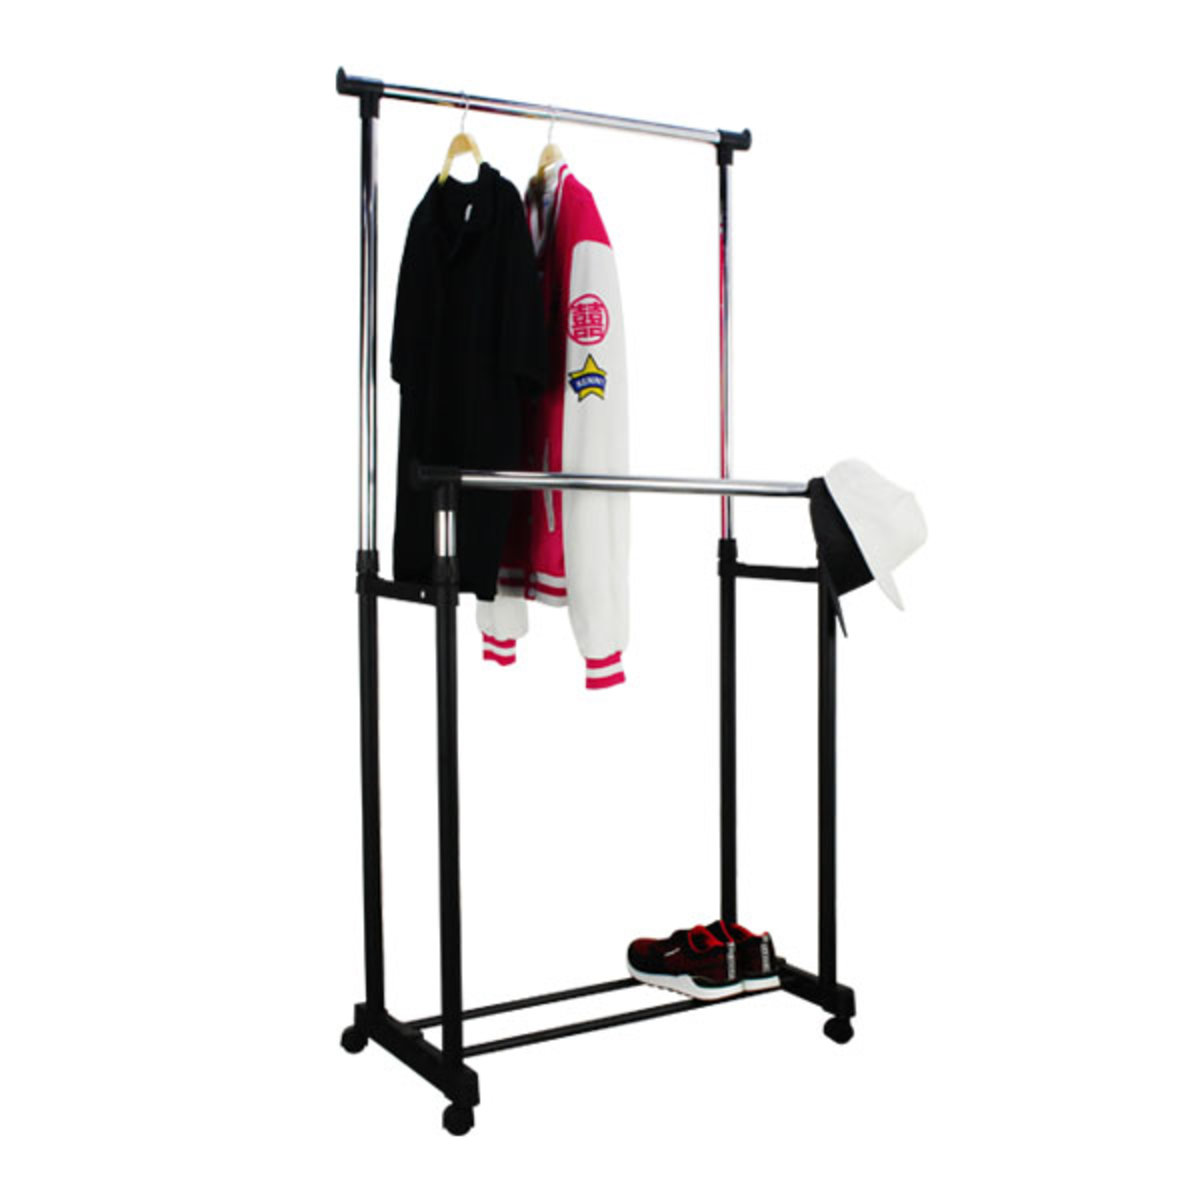 Double Rail Adjustable Garment Rack